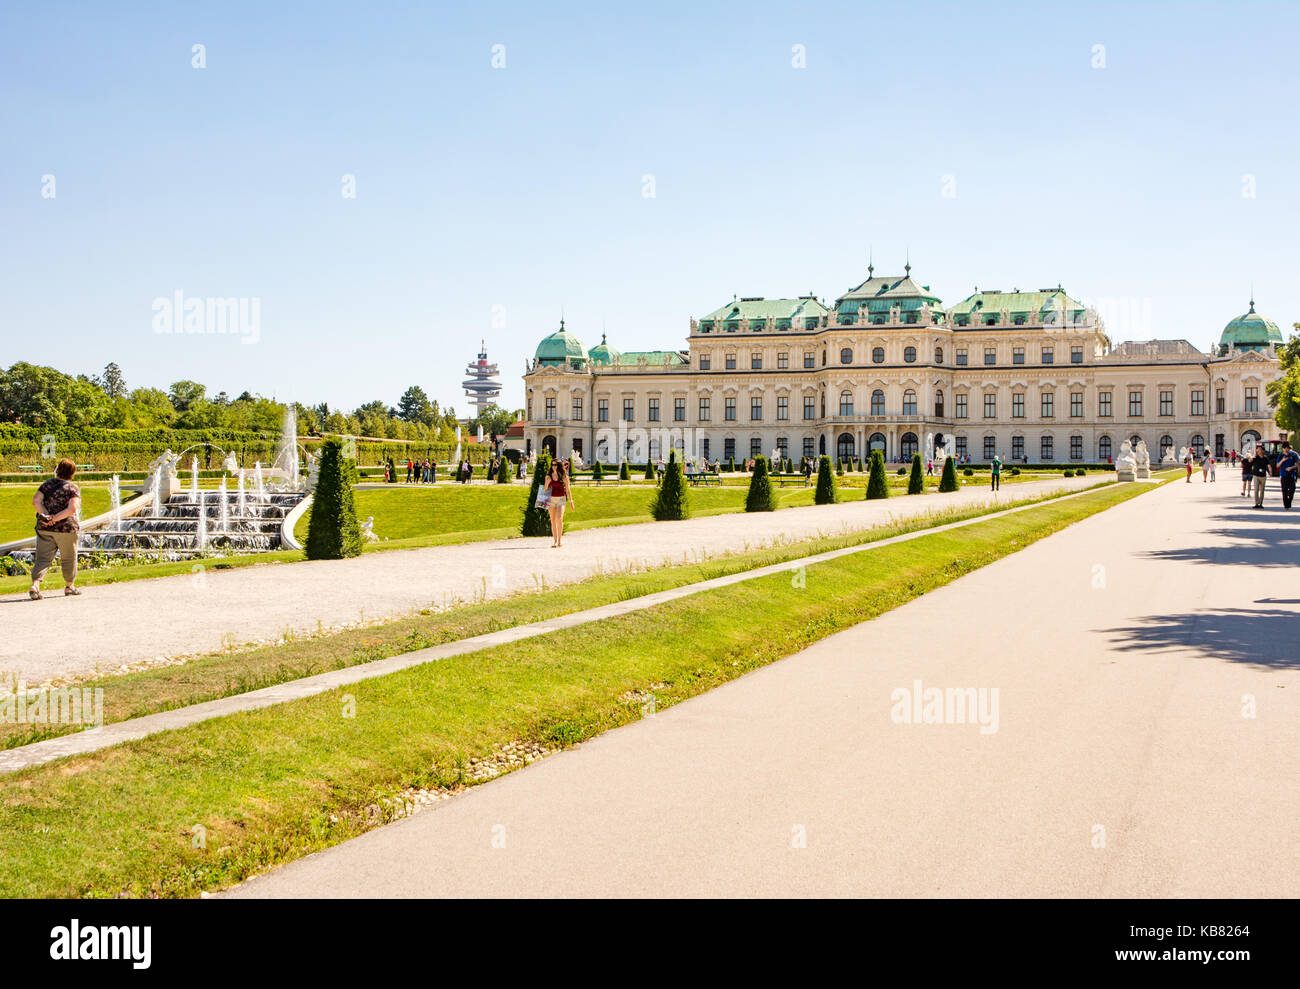 VIENNA, AUSTRIA - AUGUST 29: People in the garden of the Belvedere palace in Vienna, Austria on August 29, 2017. - Stock Image